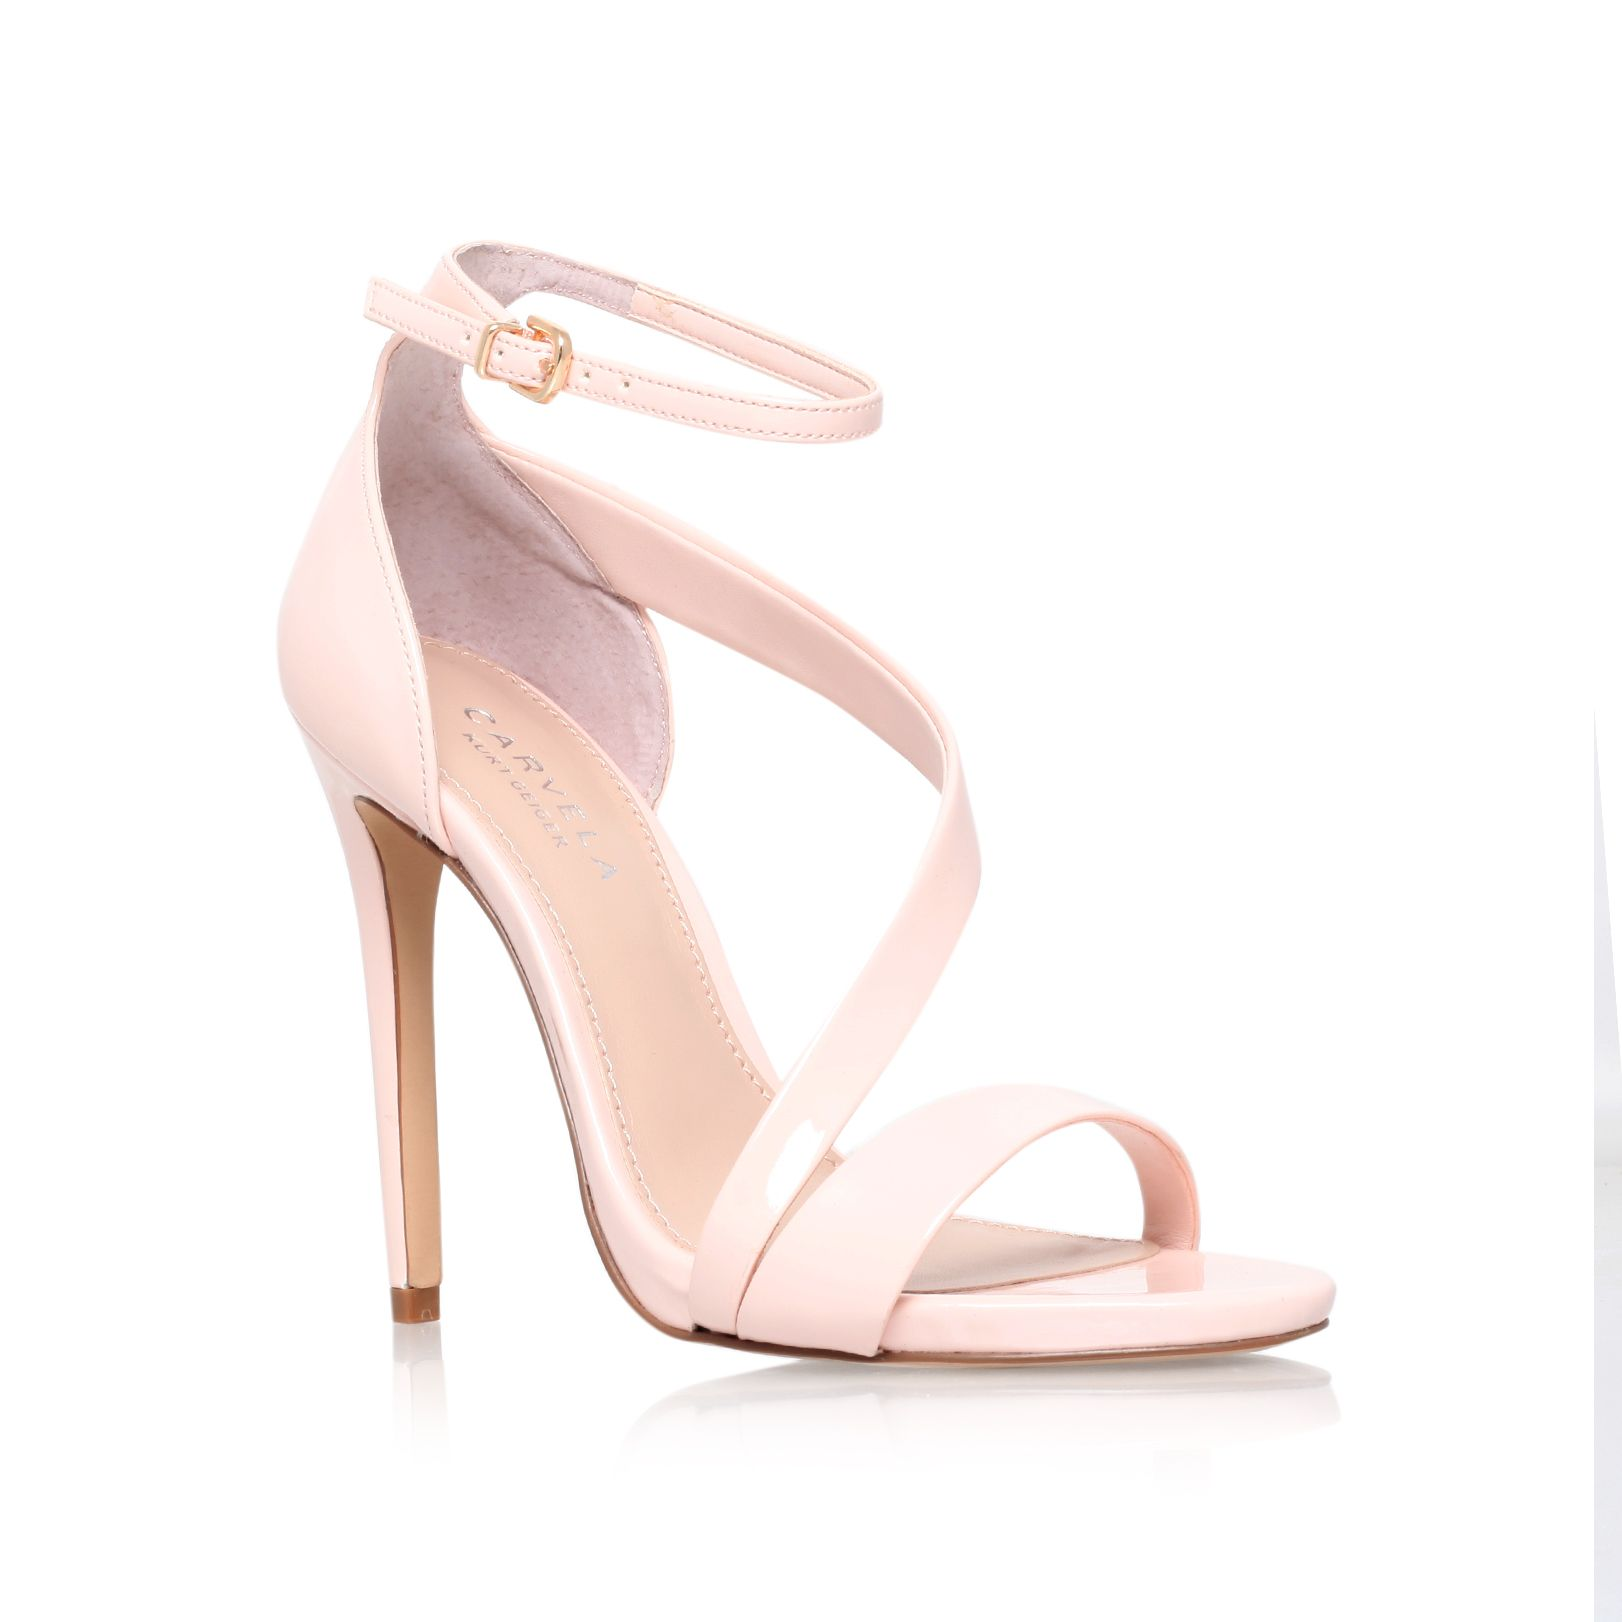 Gosh high heel sandals